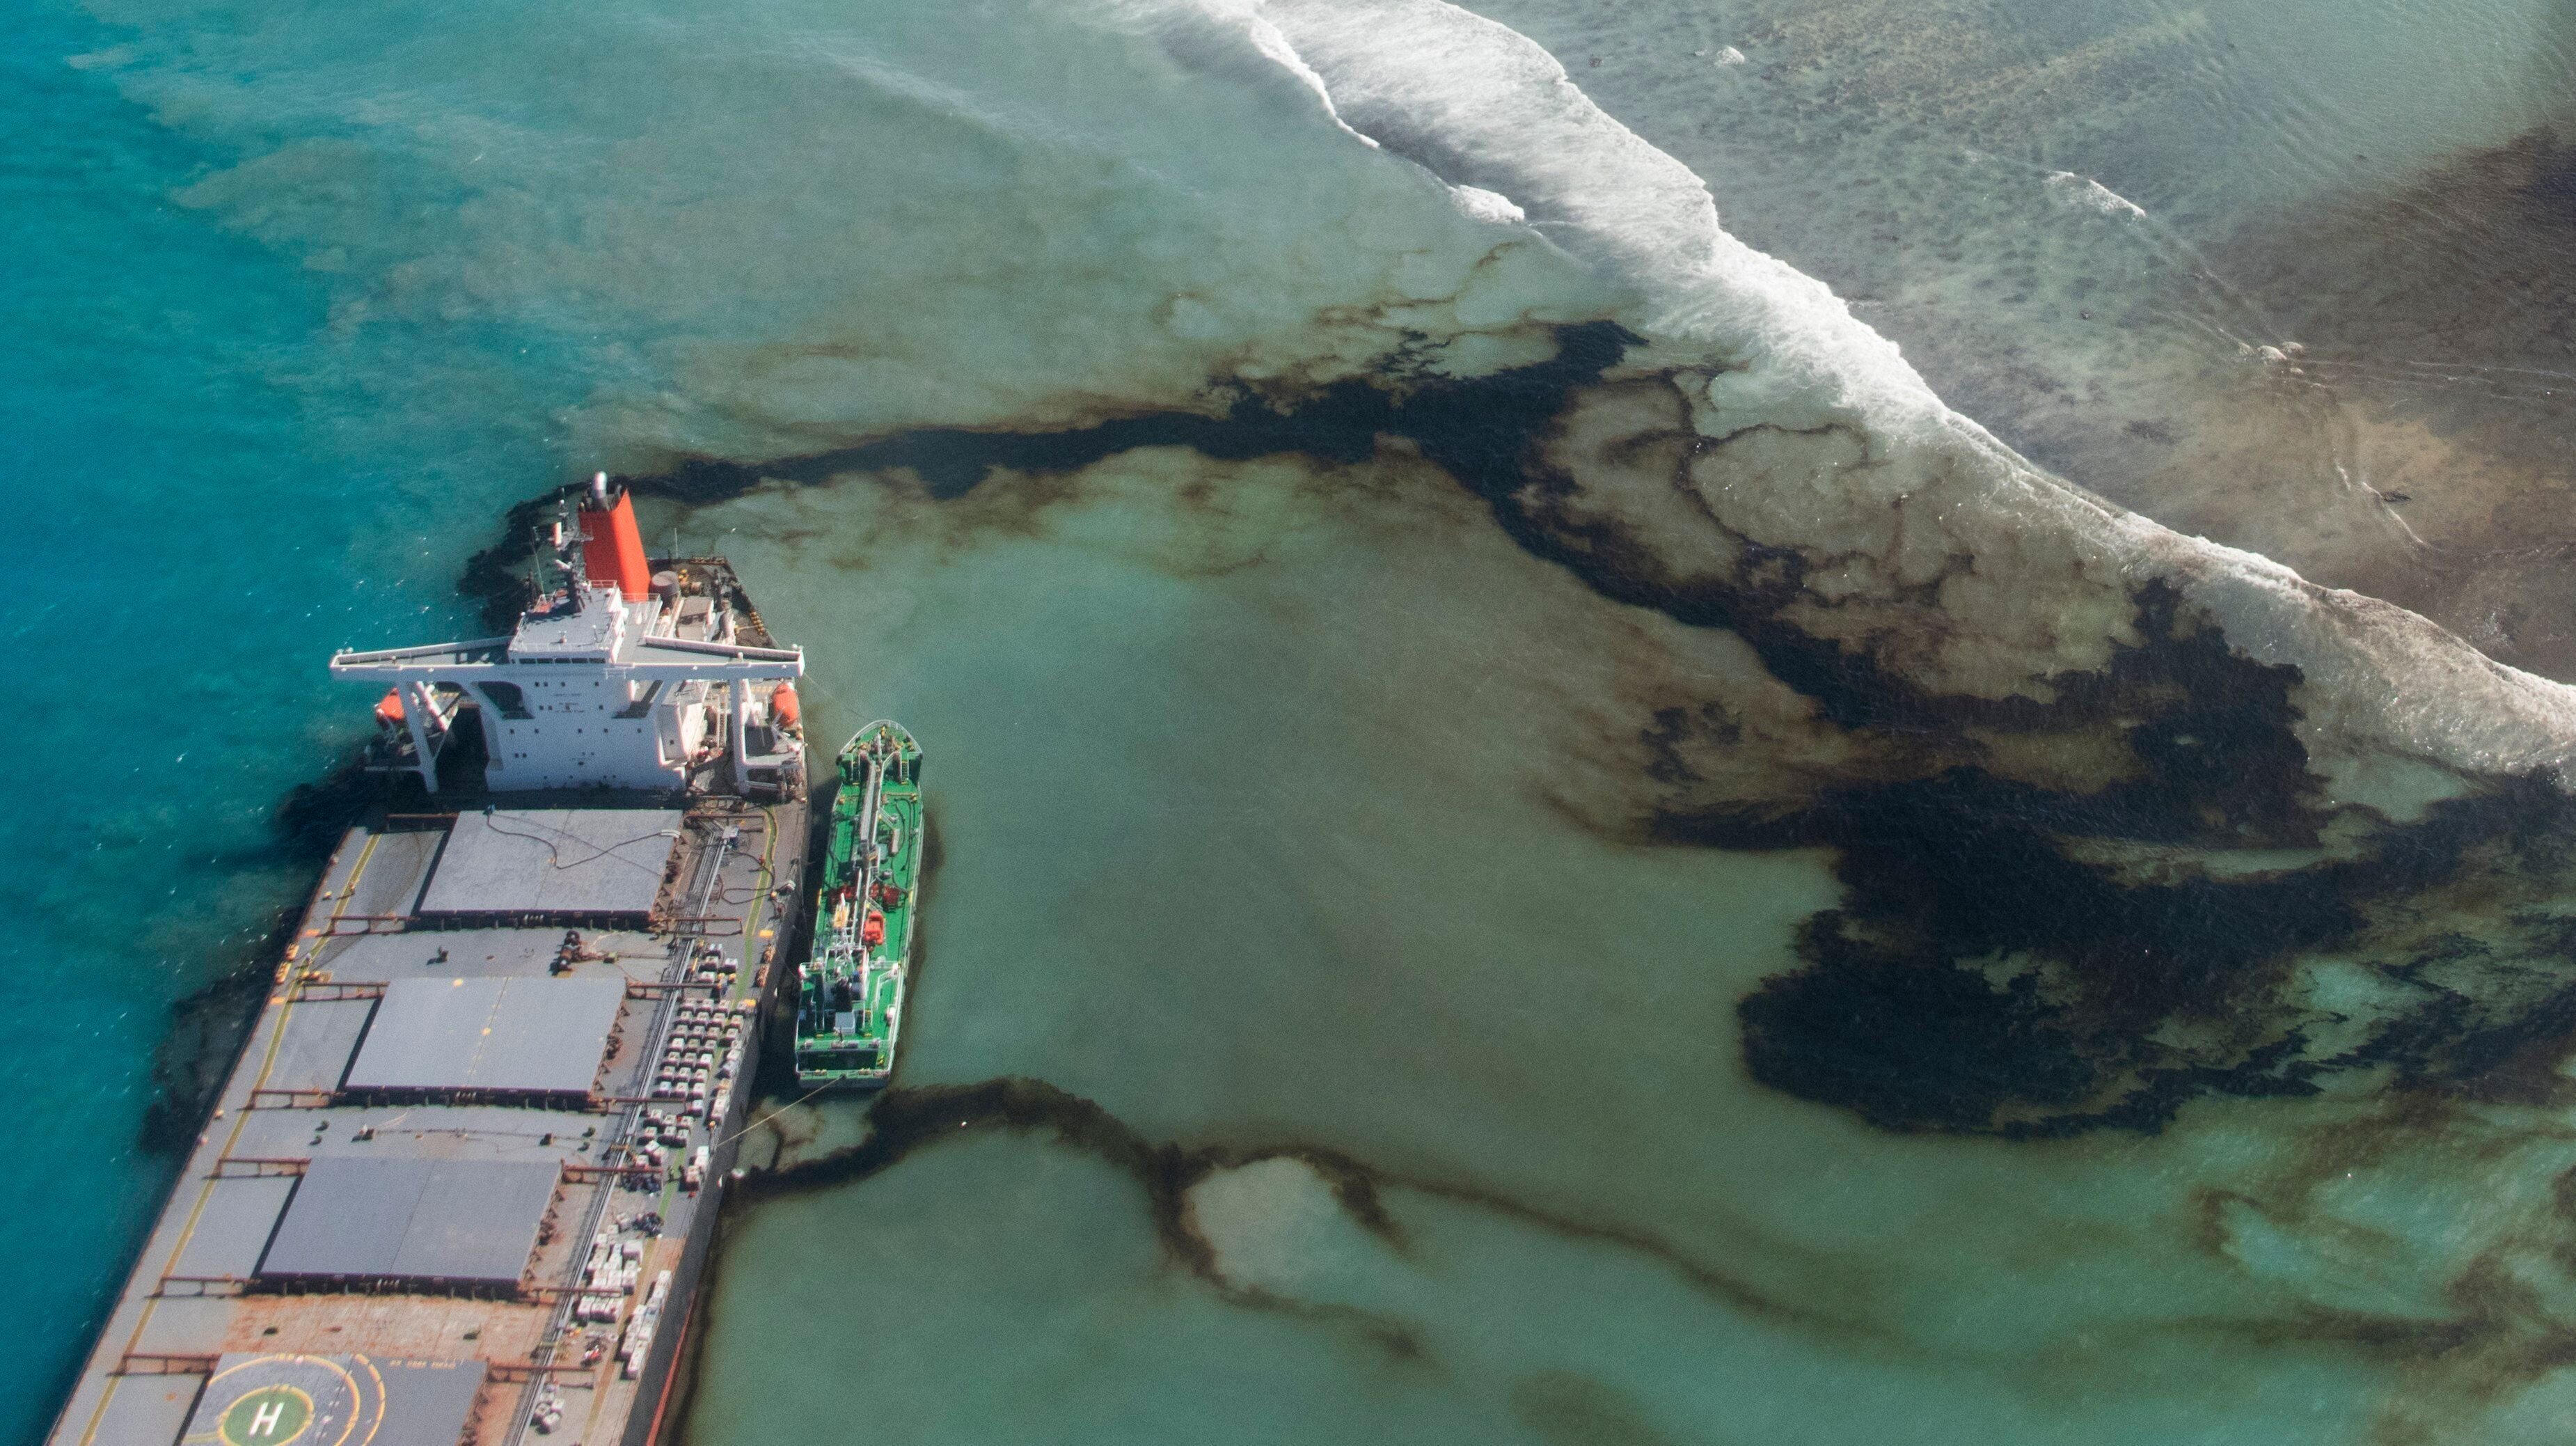 Oil leaks from the MV Wakashio, a bulk carrier ship that ran aground off the southeast coast of Mauritius.